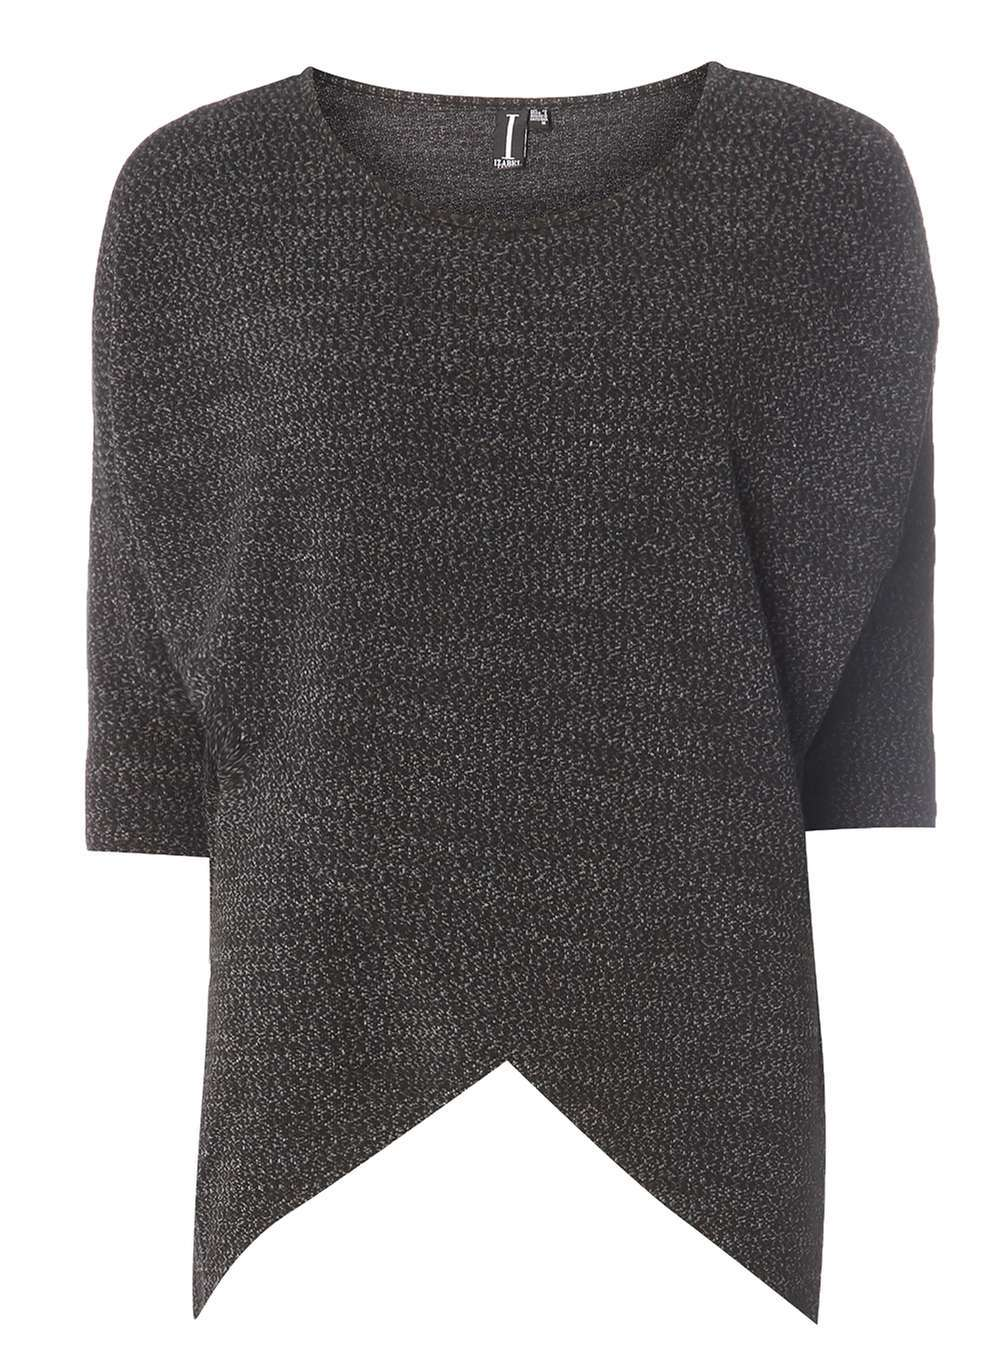 Womens *Izabel London Black Top Black - pattern: plain; predominant colour: black; occasions: casual; length: standard; style: top; fibres: polyester/polyamide - mix; fit: body skimming; neckline: crew; sleeve length: 3/4 length; sleeve style: standard; texture group: knits/crochet; pattern type: fabric; wardrobe: basic; season: a/w 2016